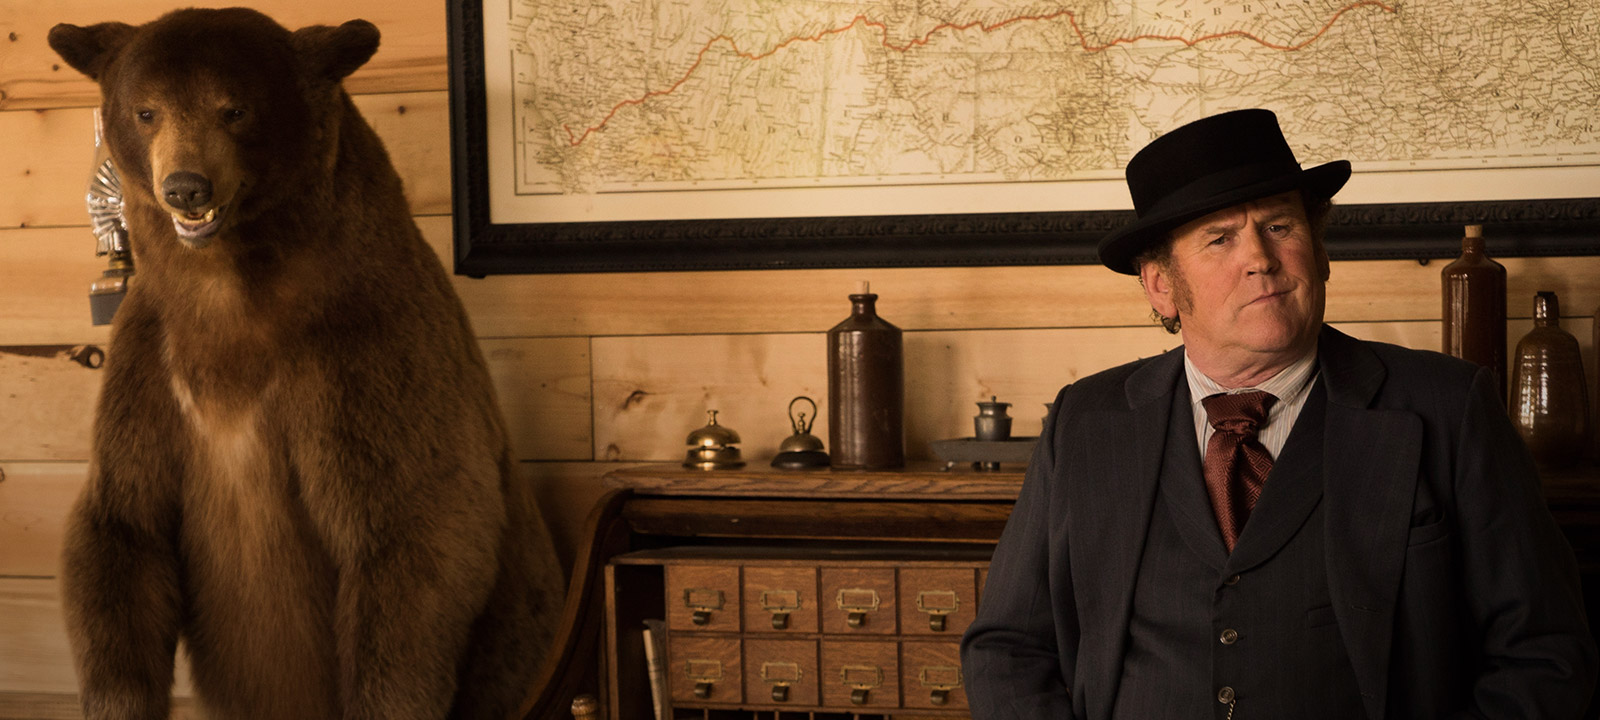 hell-on-wheels-episode-509-durant-meany-pre-800×600